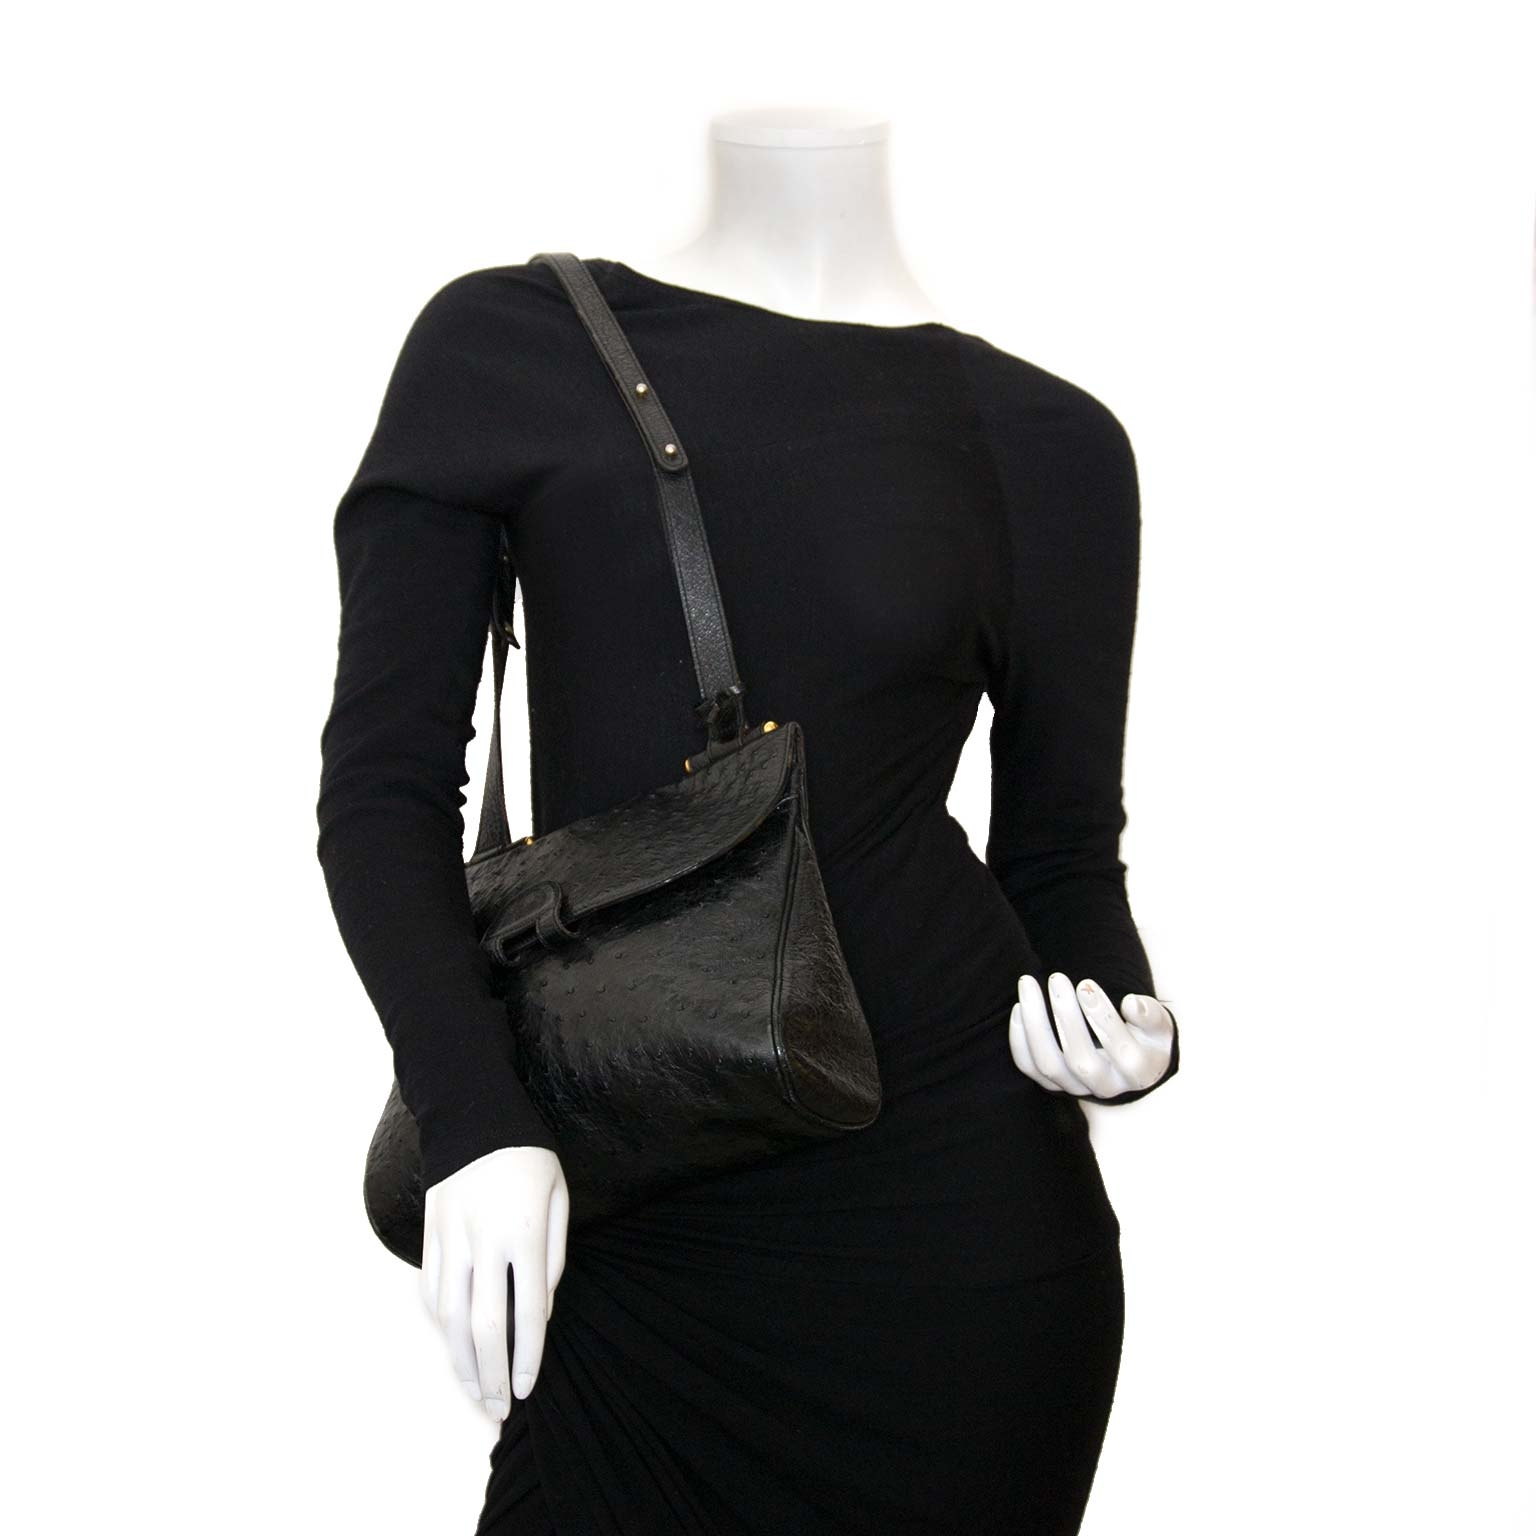 delvaux black ostrich chablis shoulder bag now for sale at labellov vintage fashion webshop belgium